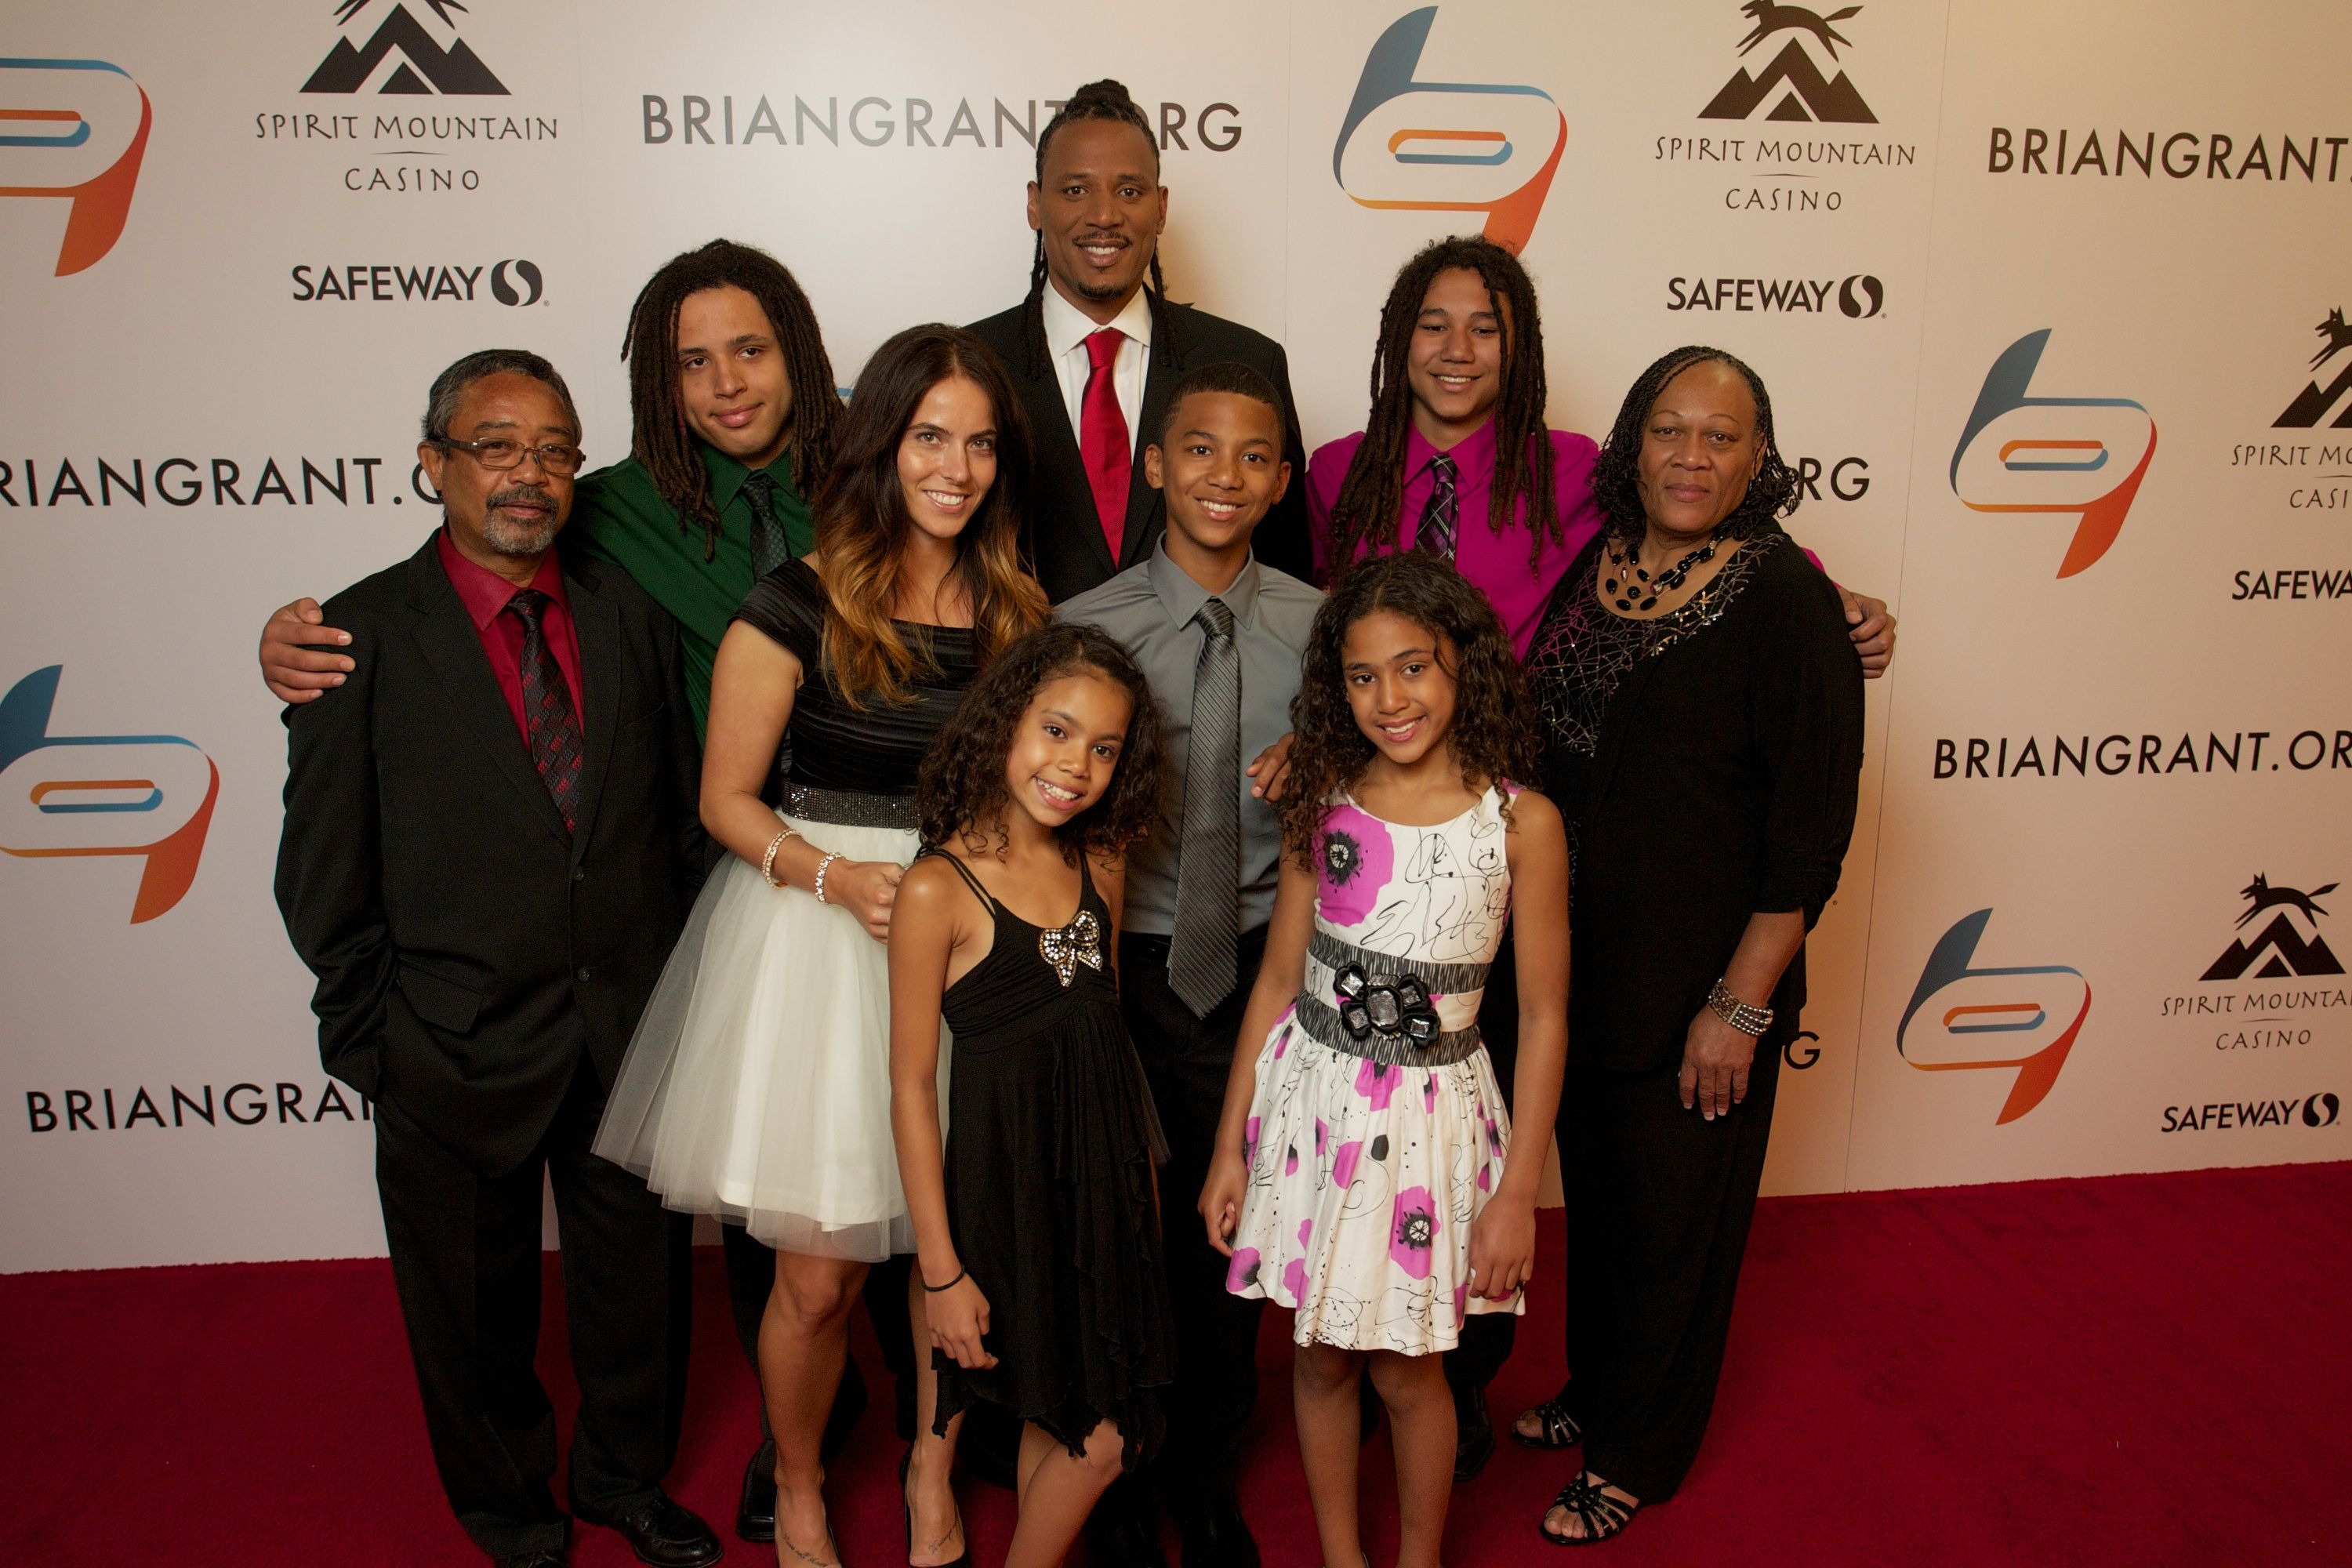 Brian Grant & Family Shake It Till We Make It Celebrity Gala